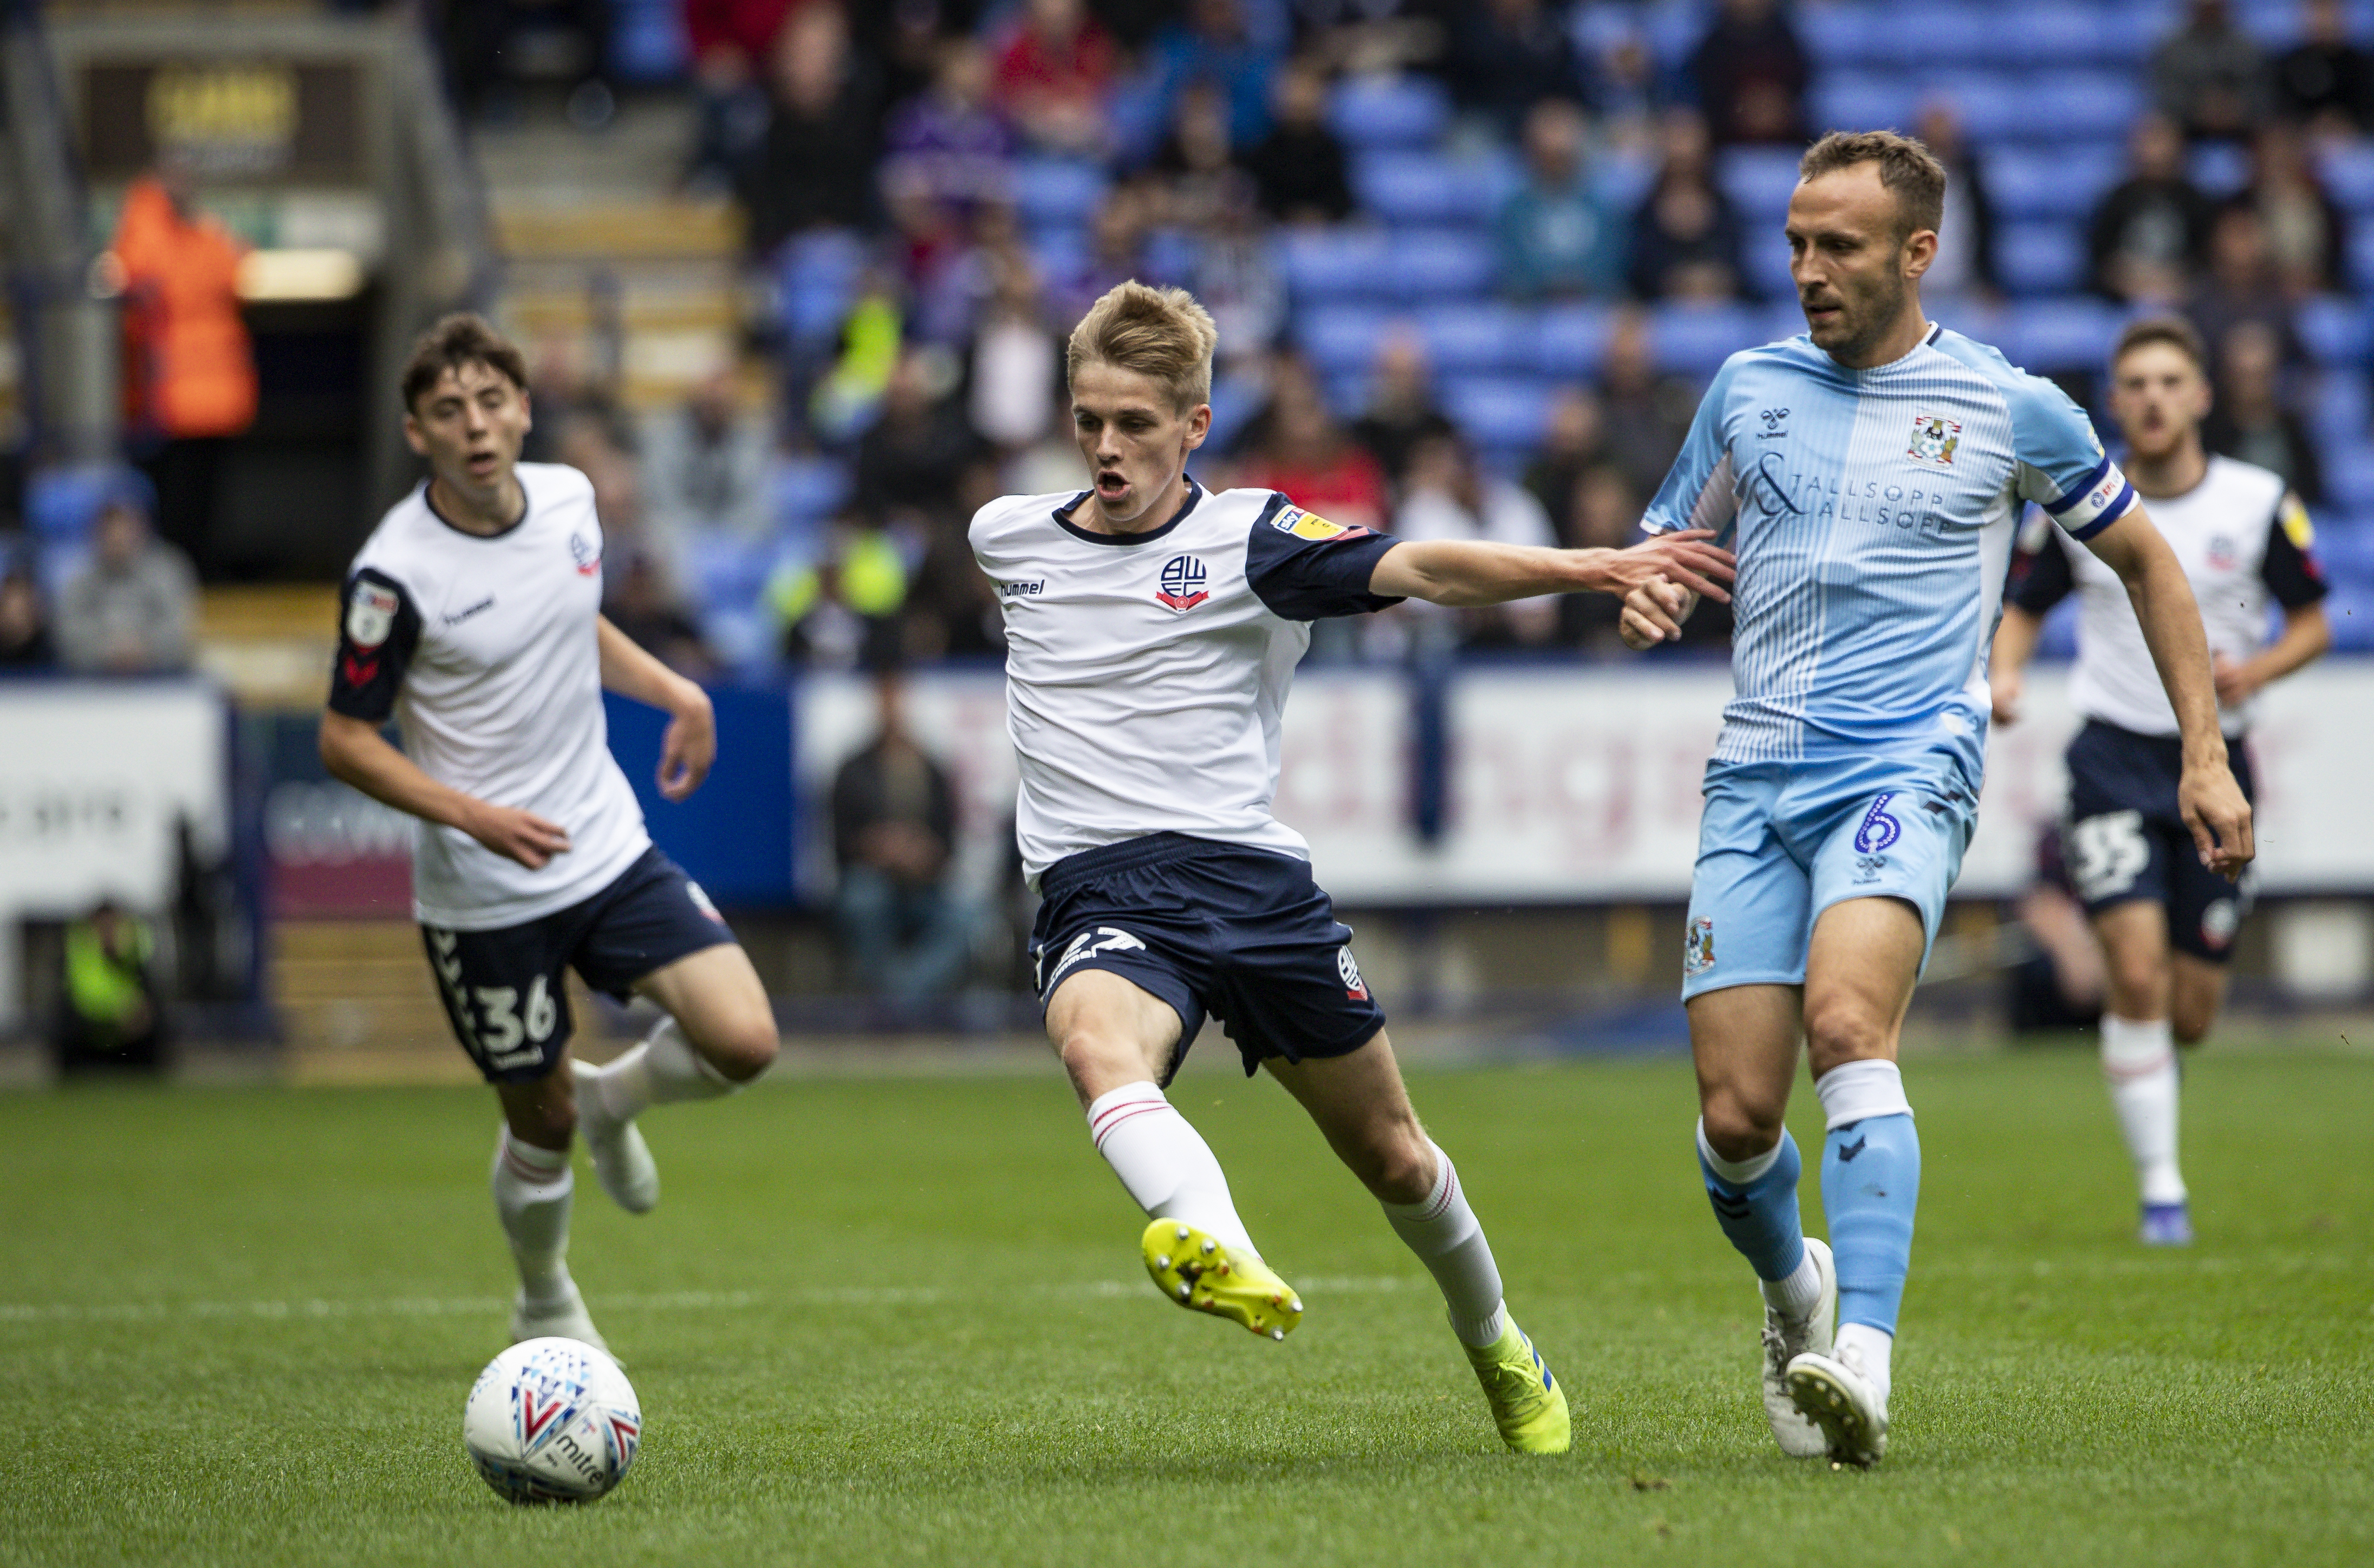 Bolton Wanderers v Coventry City - Sky Bet League One